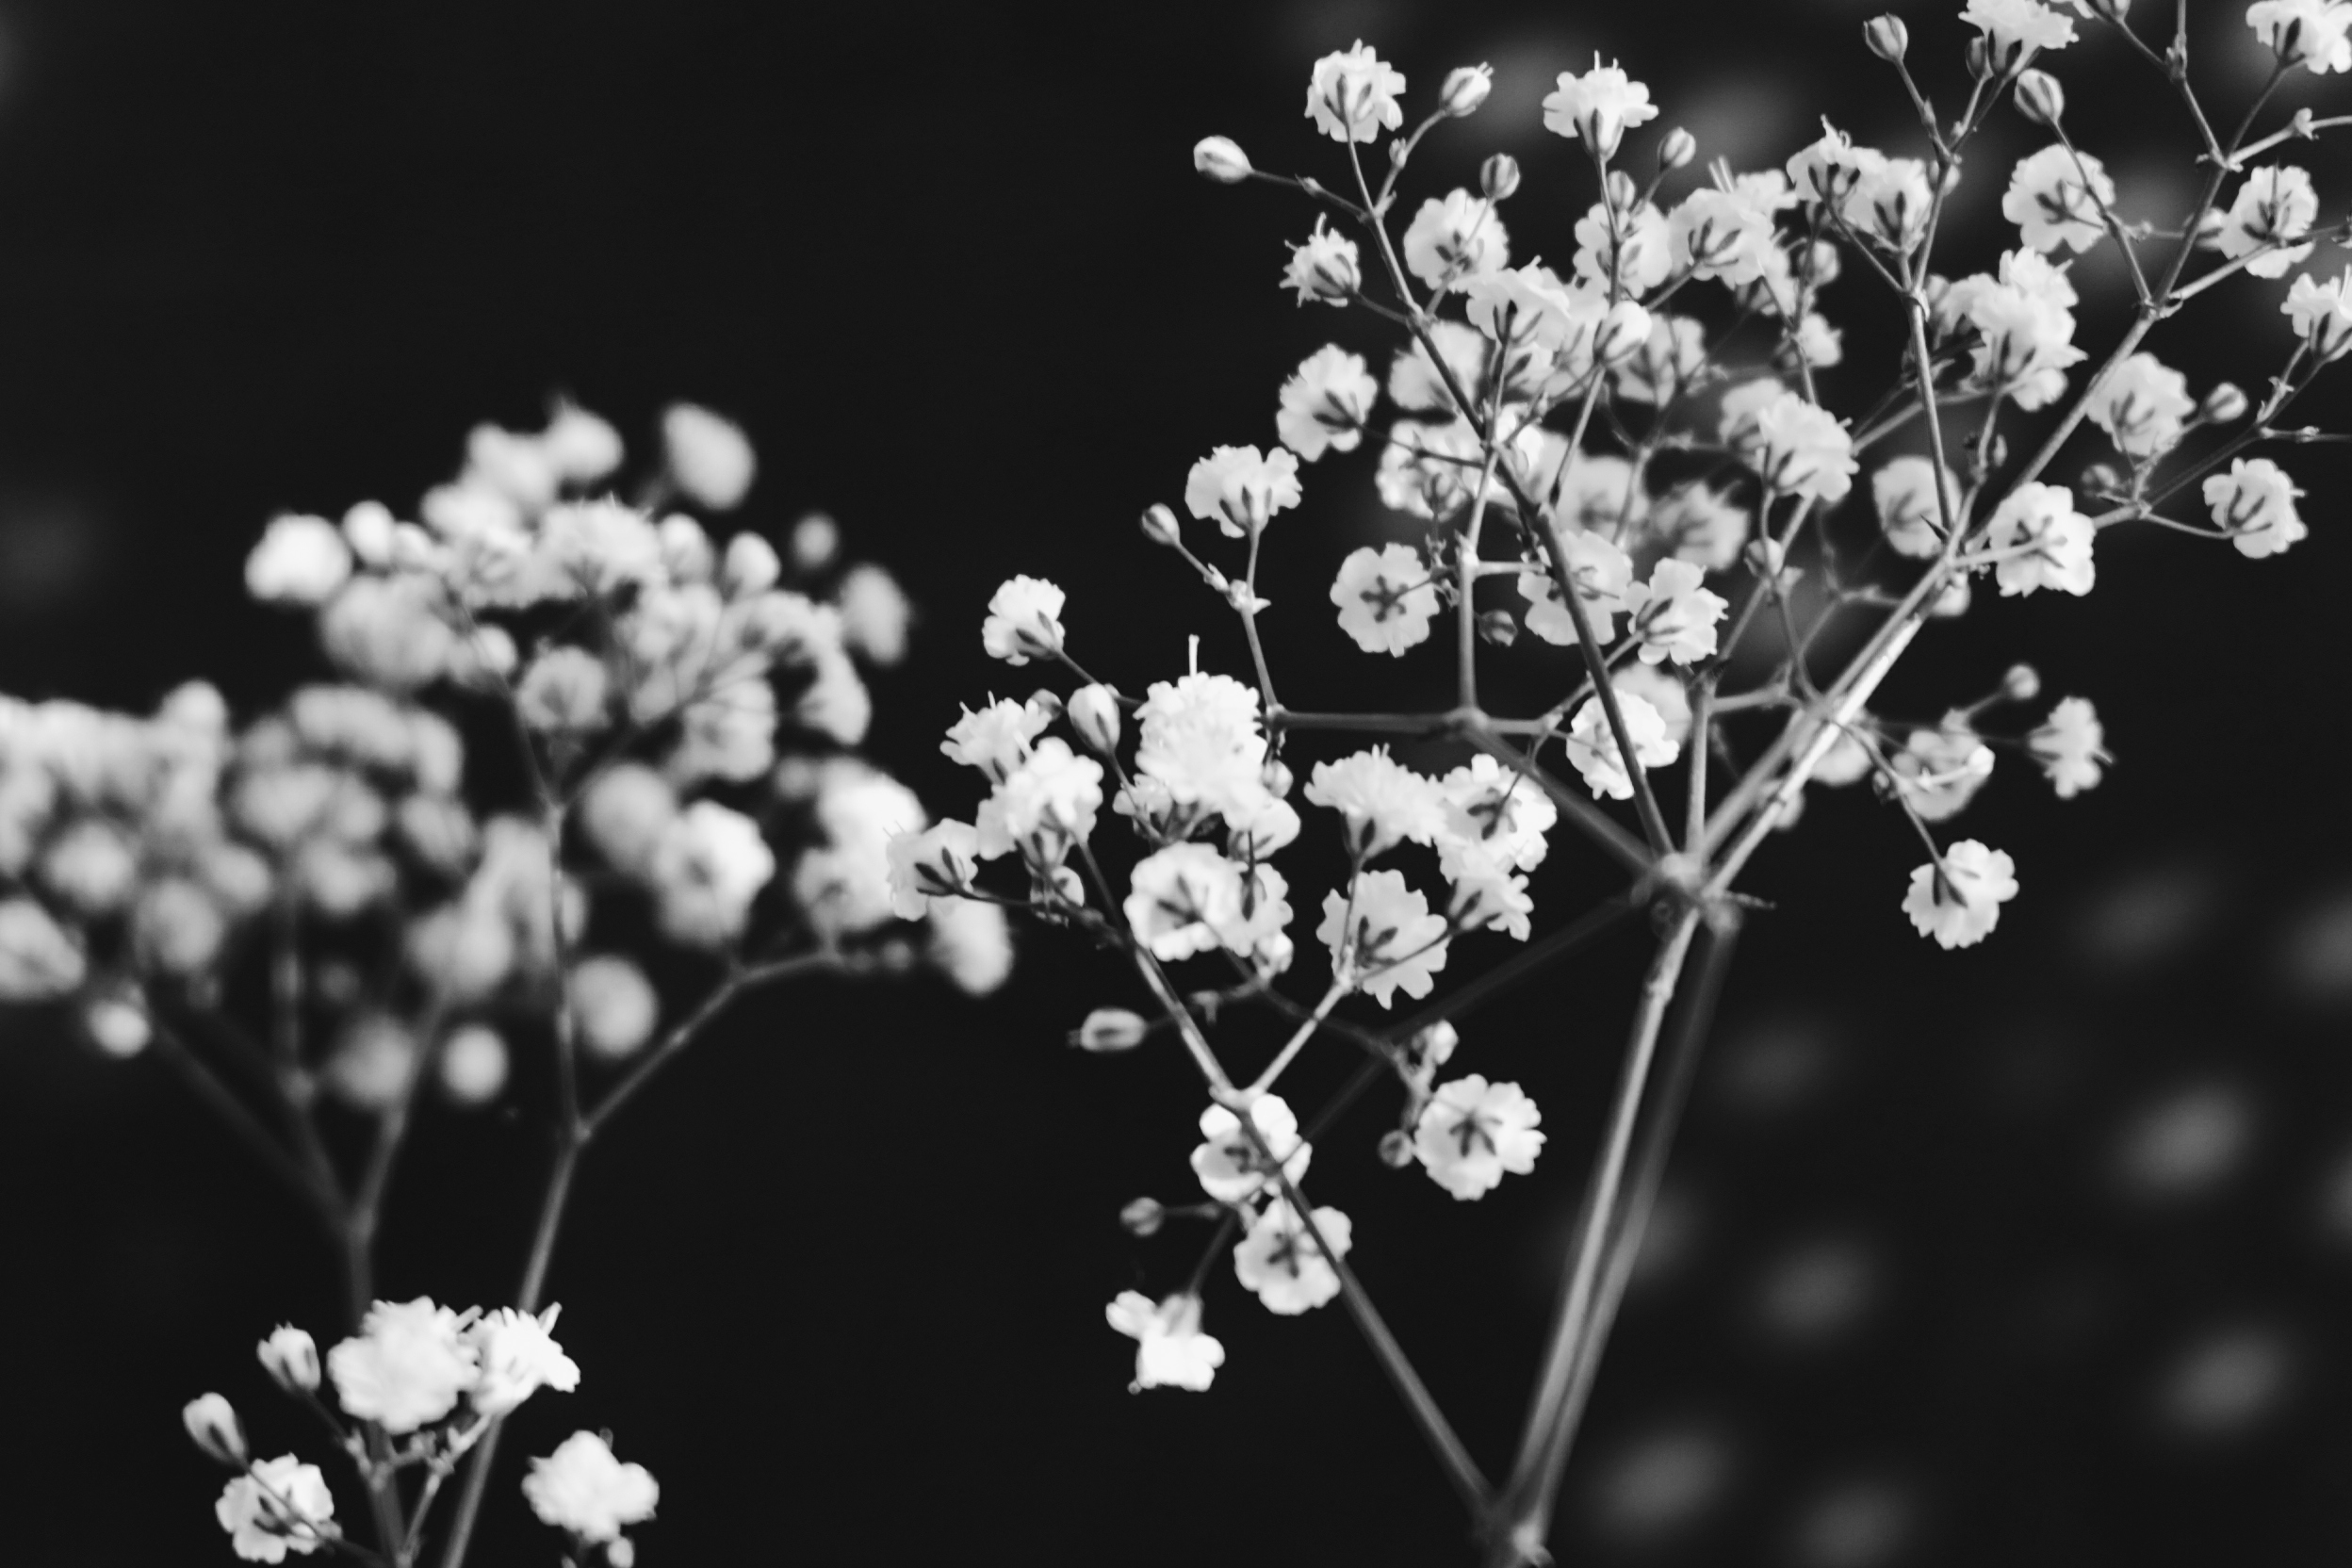 Black white hd wallpaper background image 2496x1664 id820642 wallpaper abyss